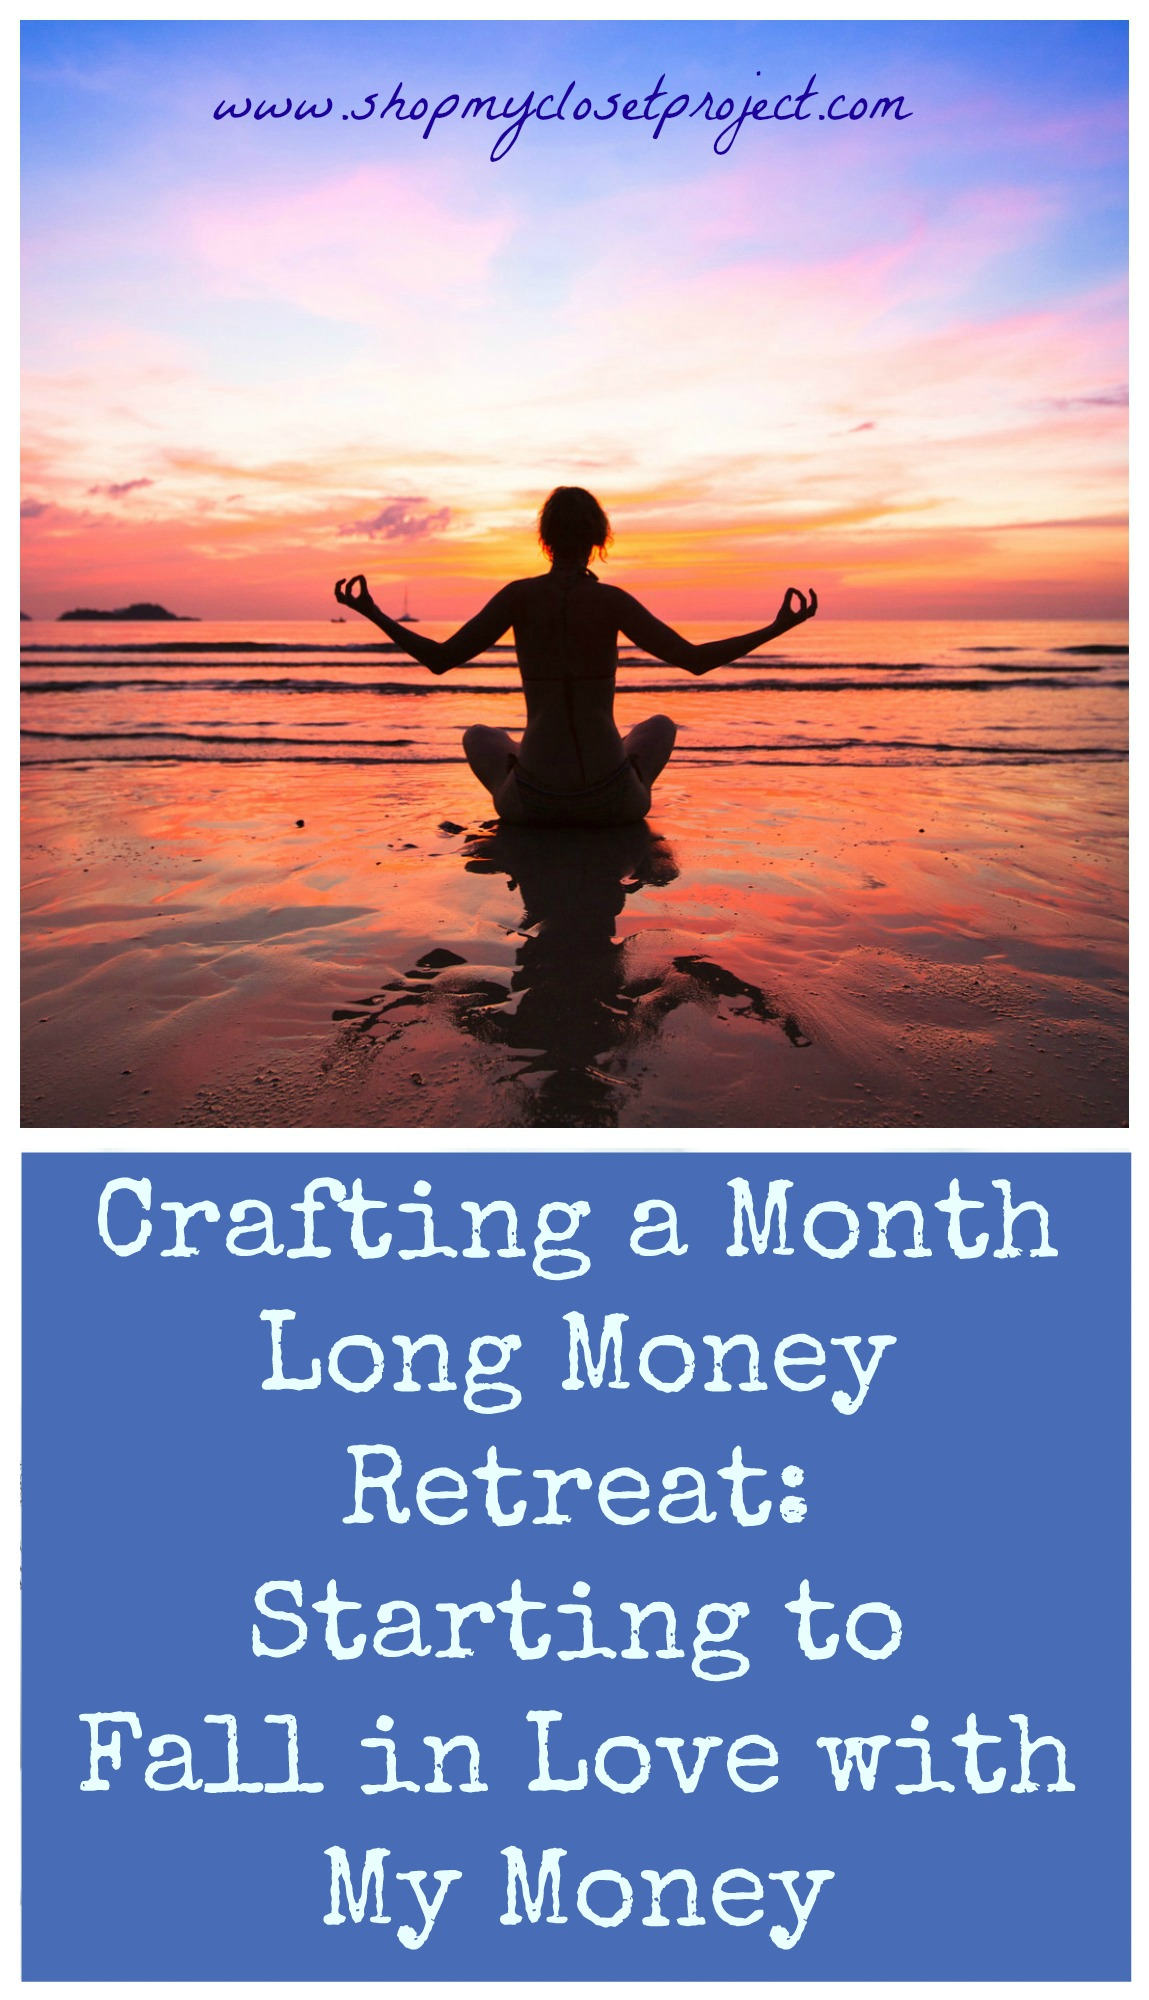 Crafting a Month Long Money Retreat-Starting to Fall in Love with My Money